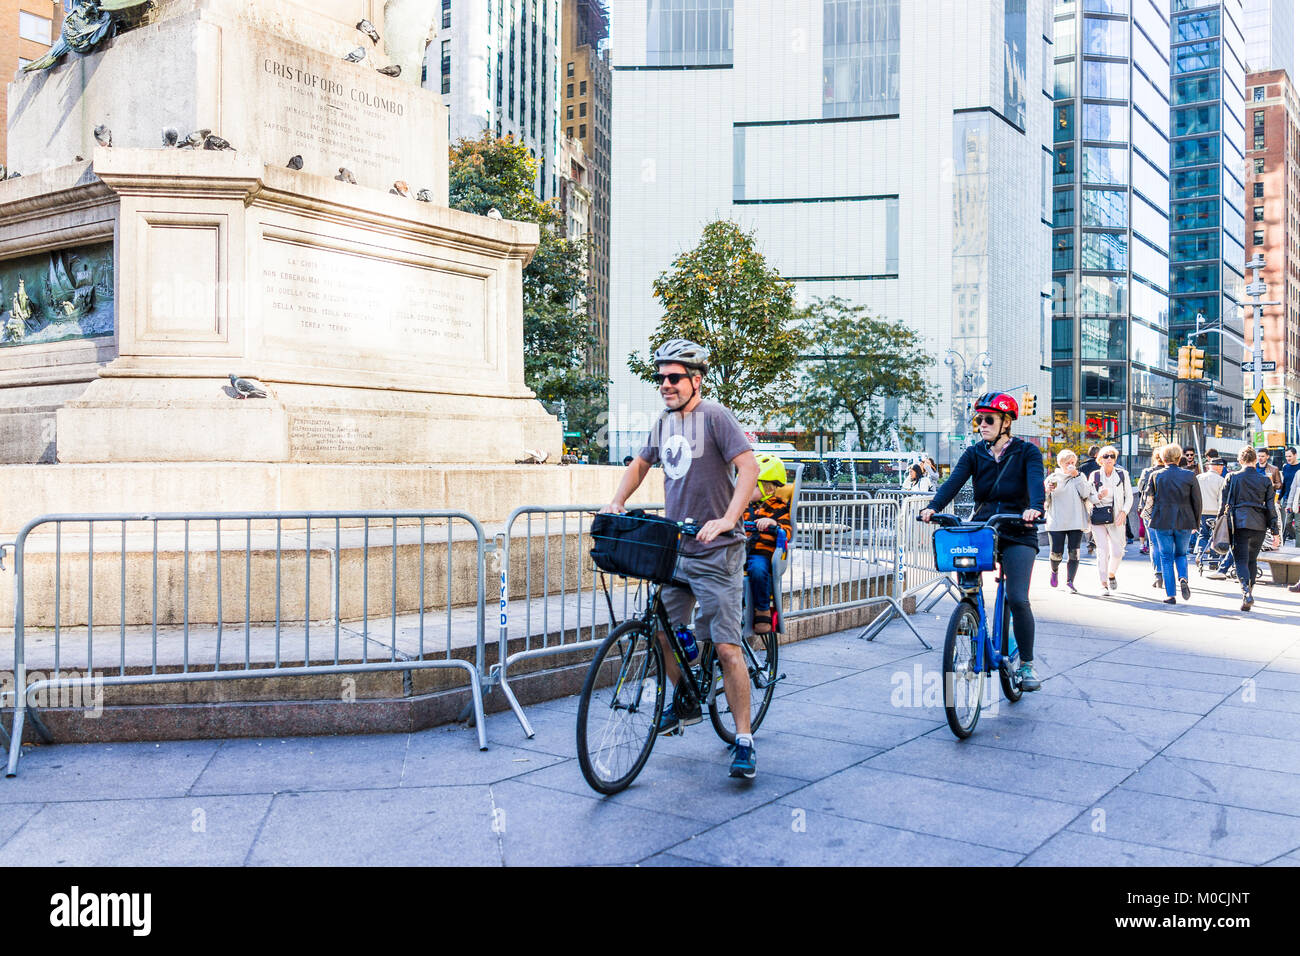 New York City, USA - October 28, 2017: Midtown Manhattan with people riding bicycles walking by Christopher Columbus Stock Photo